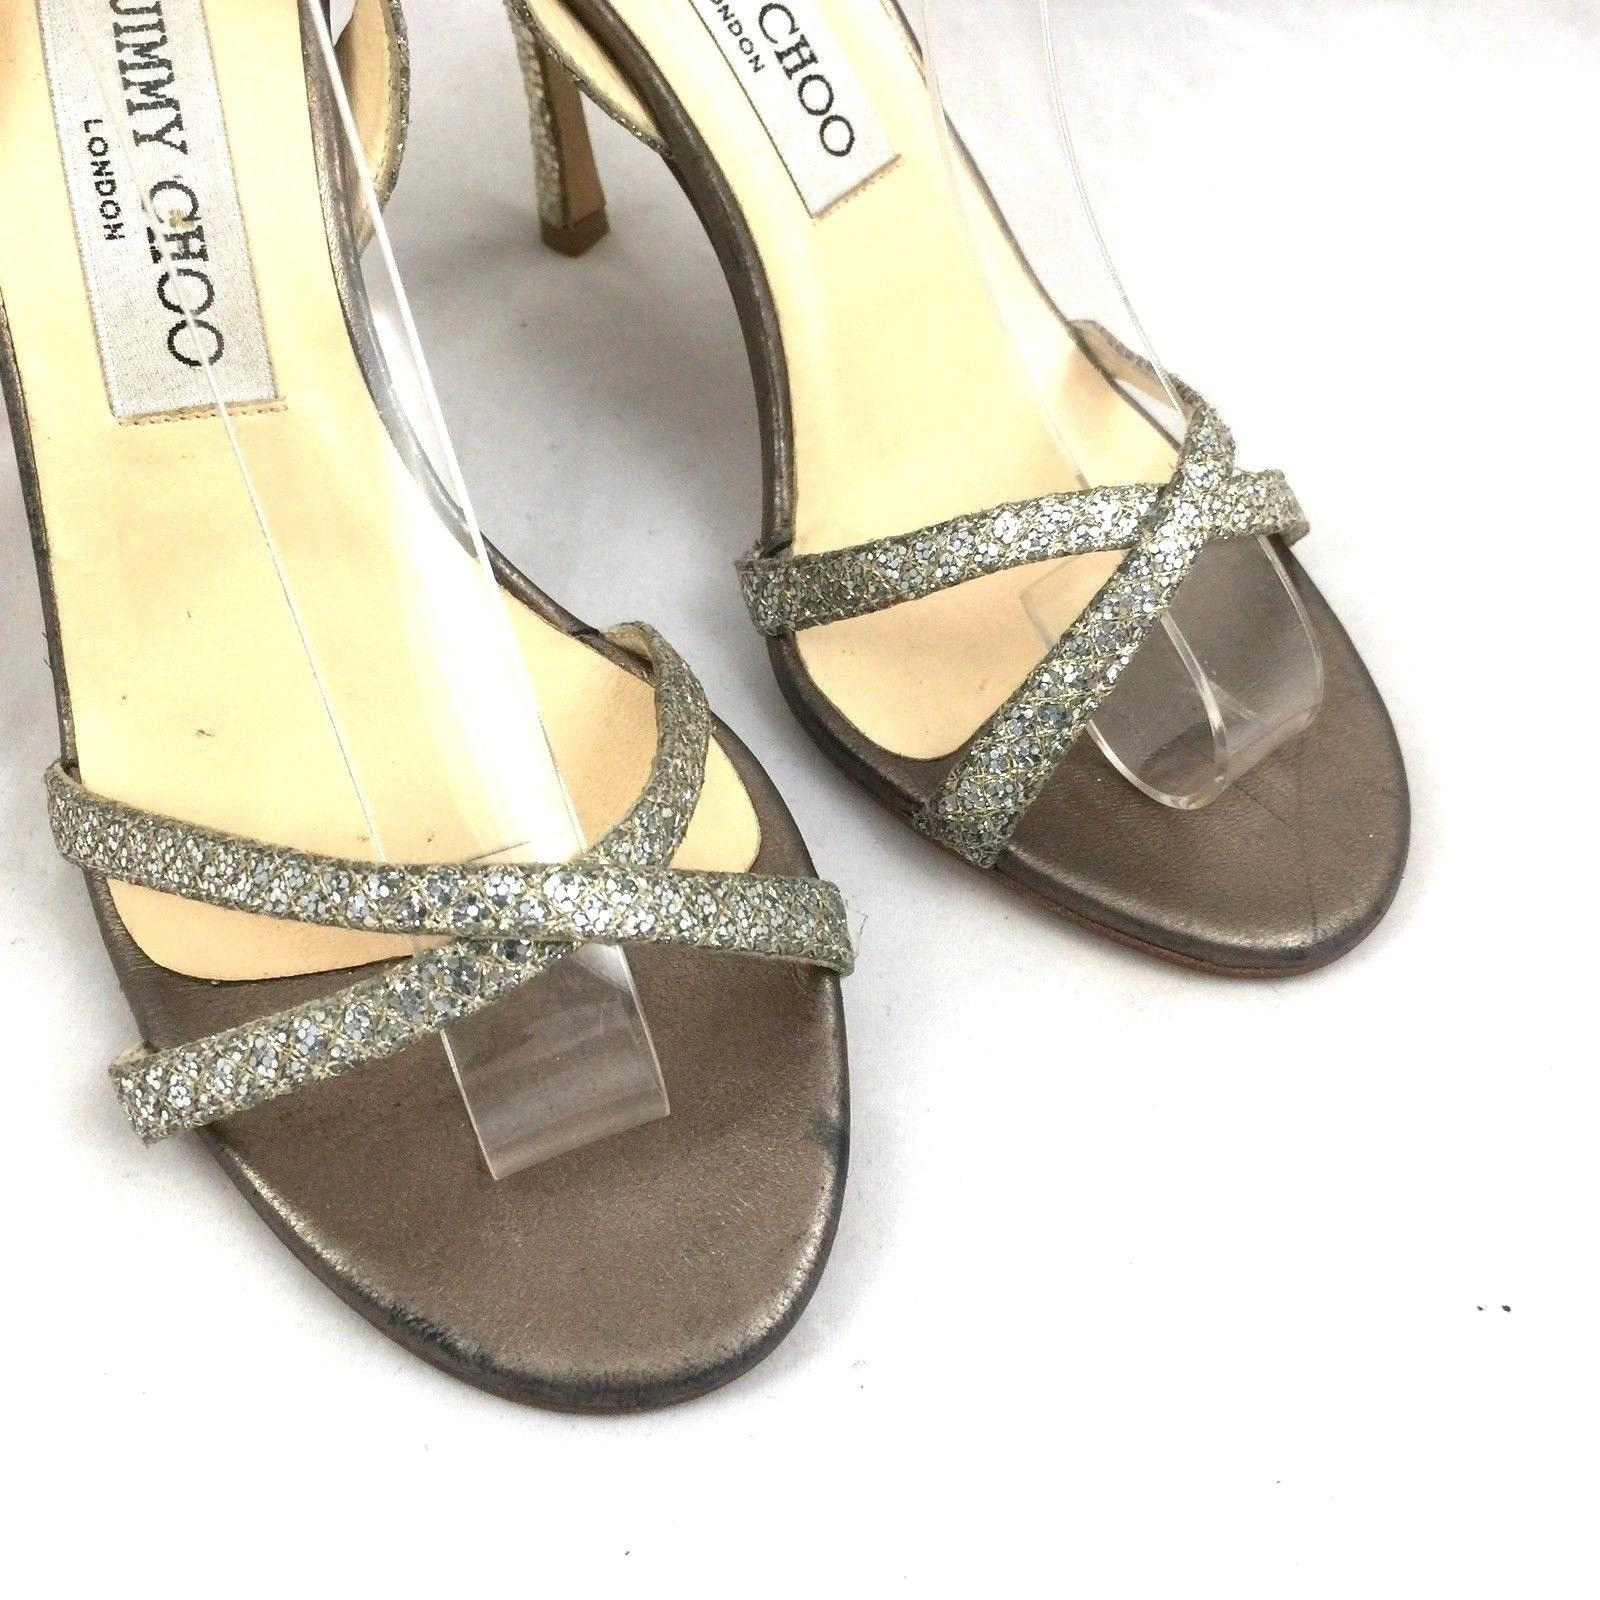 265e8ed118e ... Jimmy Choo Silver Silver Silver India Glitter Leather Open Toe Slingback  Slip Sandals Size US 6.5 ...